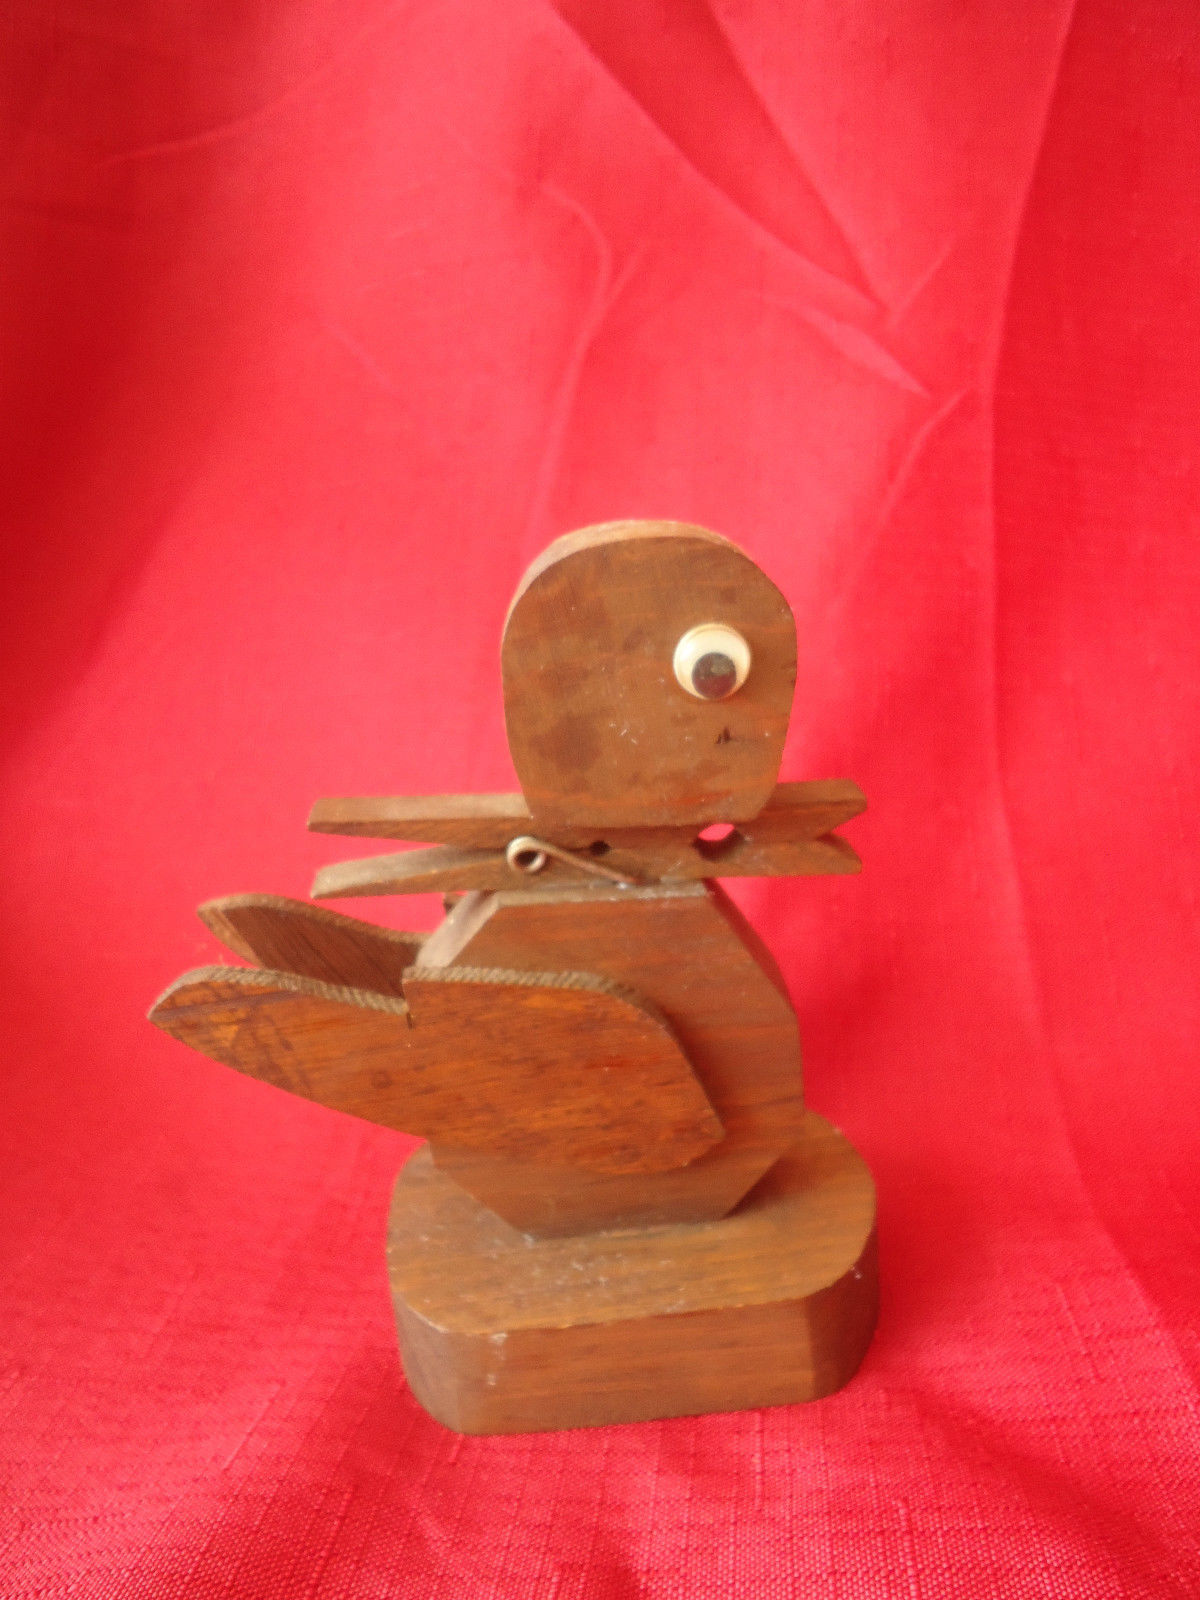 Primary image for Vintage Primitive Small Hand Made Folk Art Wood  Statue Figurine